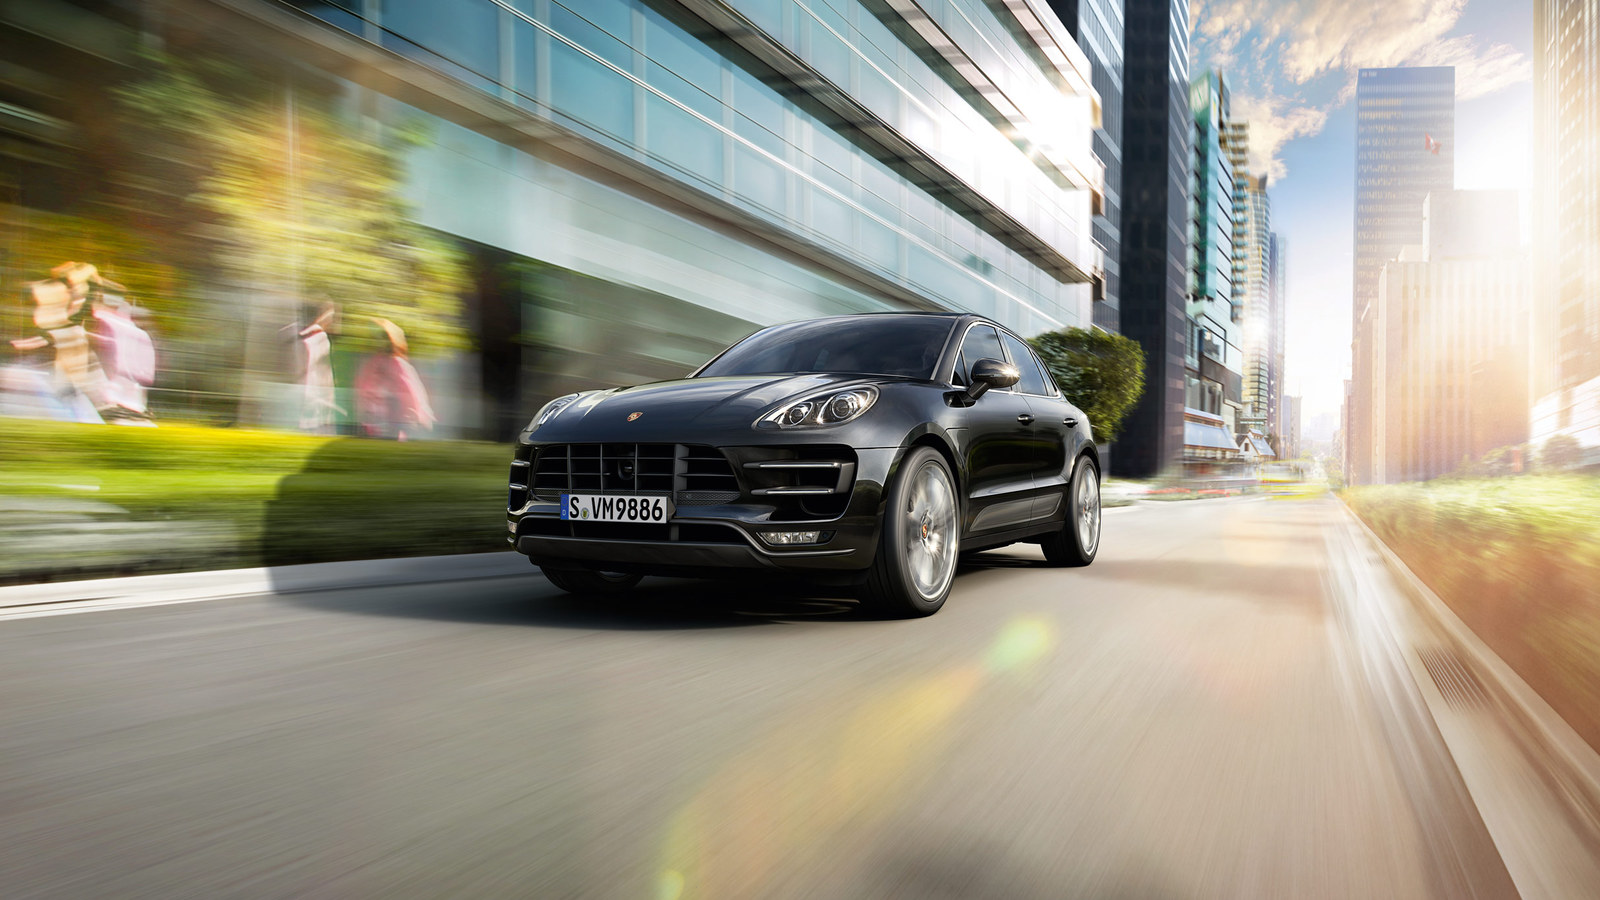 Porsche Now Makes More Money For Volkswagen Than The Vw Brand Itself